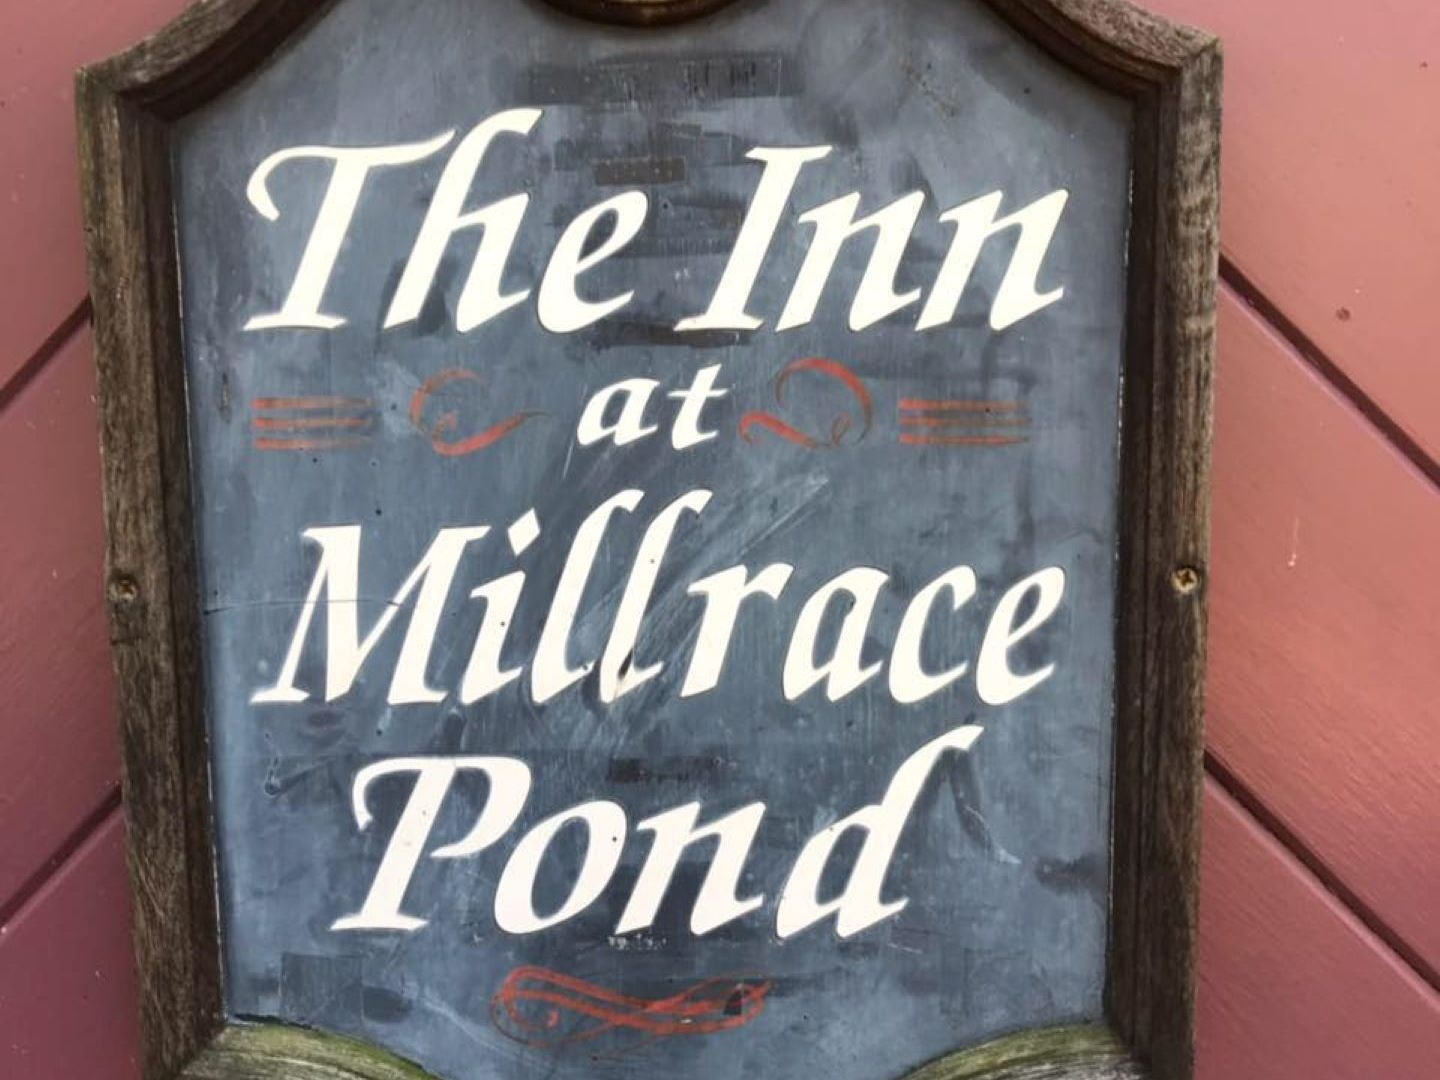 A painted sign hanging on a wall at The Inn at Millrace Pond.